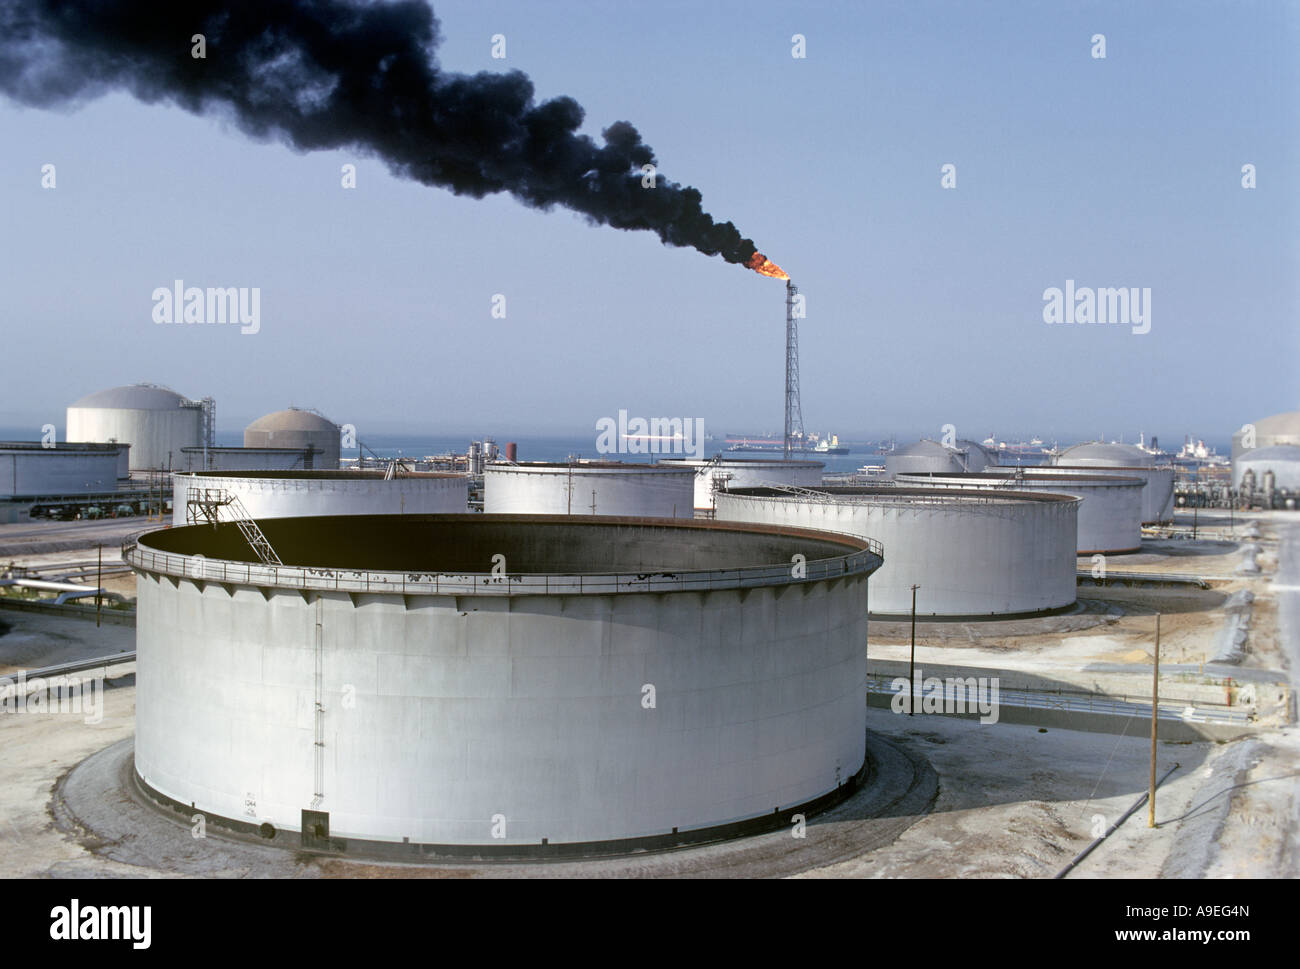 Saudi Arabia.Oil storage tanks at Ras Tanura.It is theHQ of SaudiAramco theAmerican co, set up atthe timeof King - Stock Image